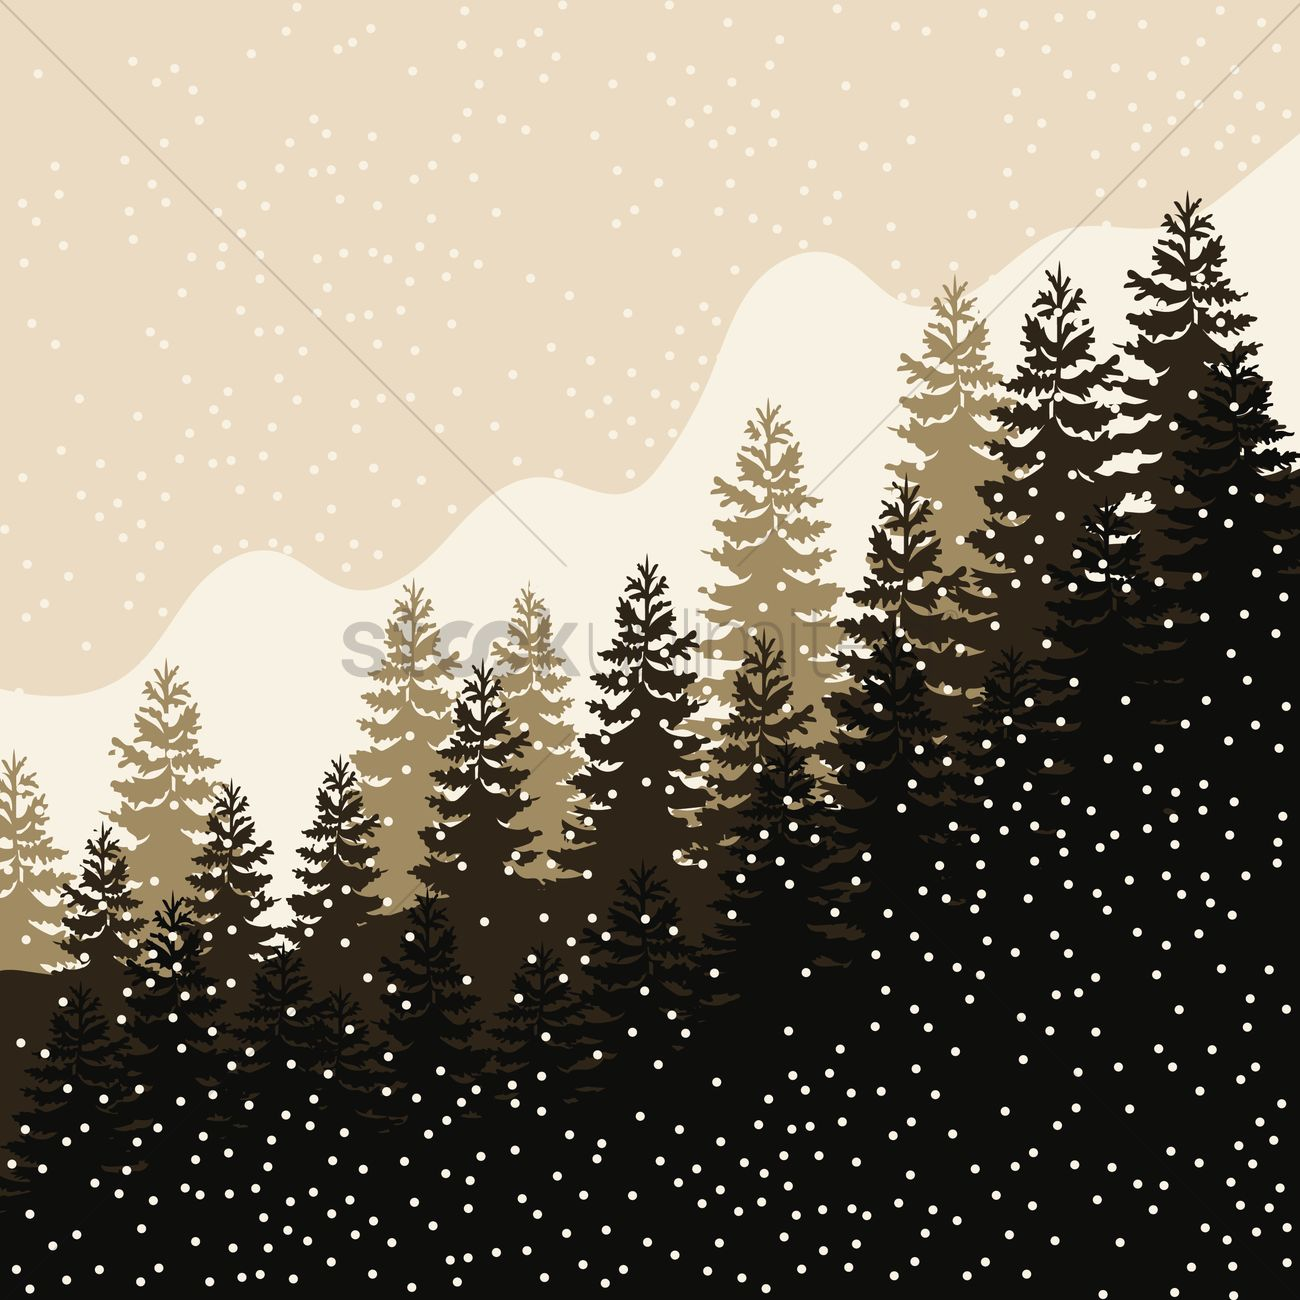 1300x1300 Forest Landscape With Snowfall Vector Image